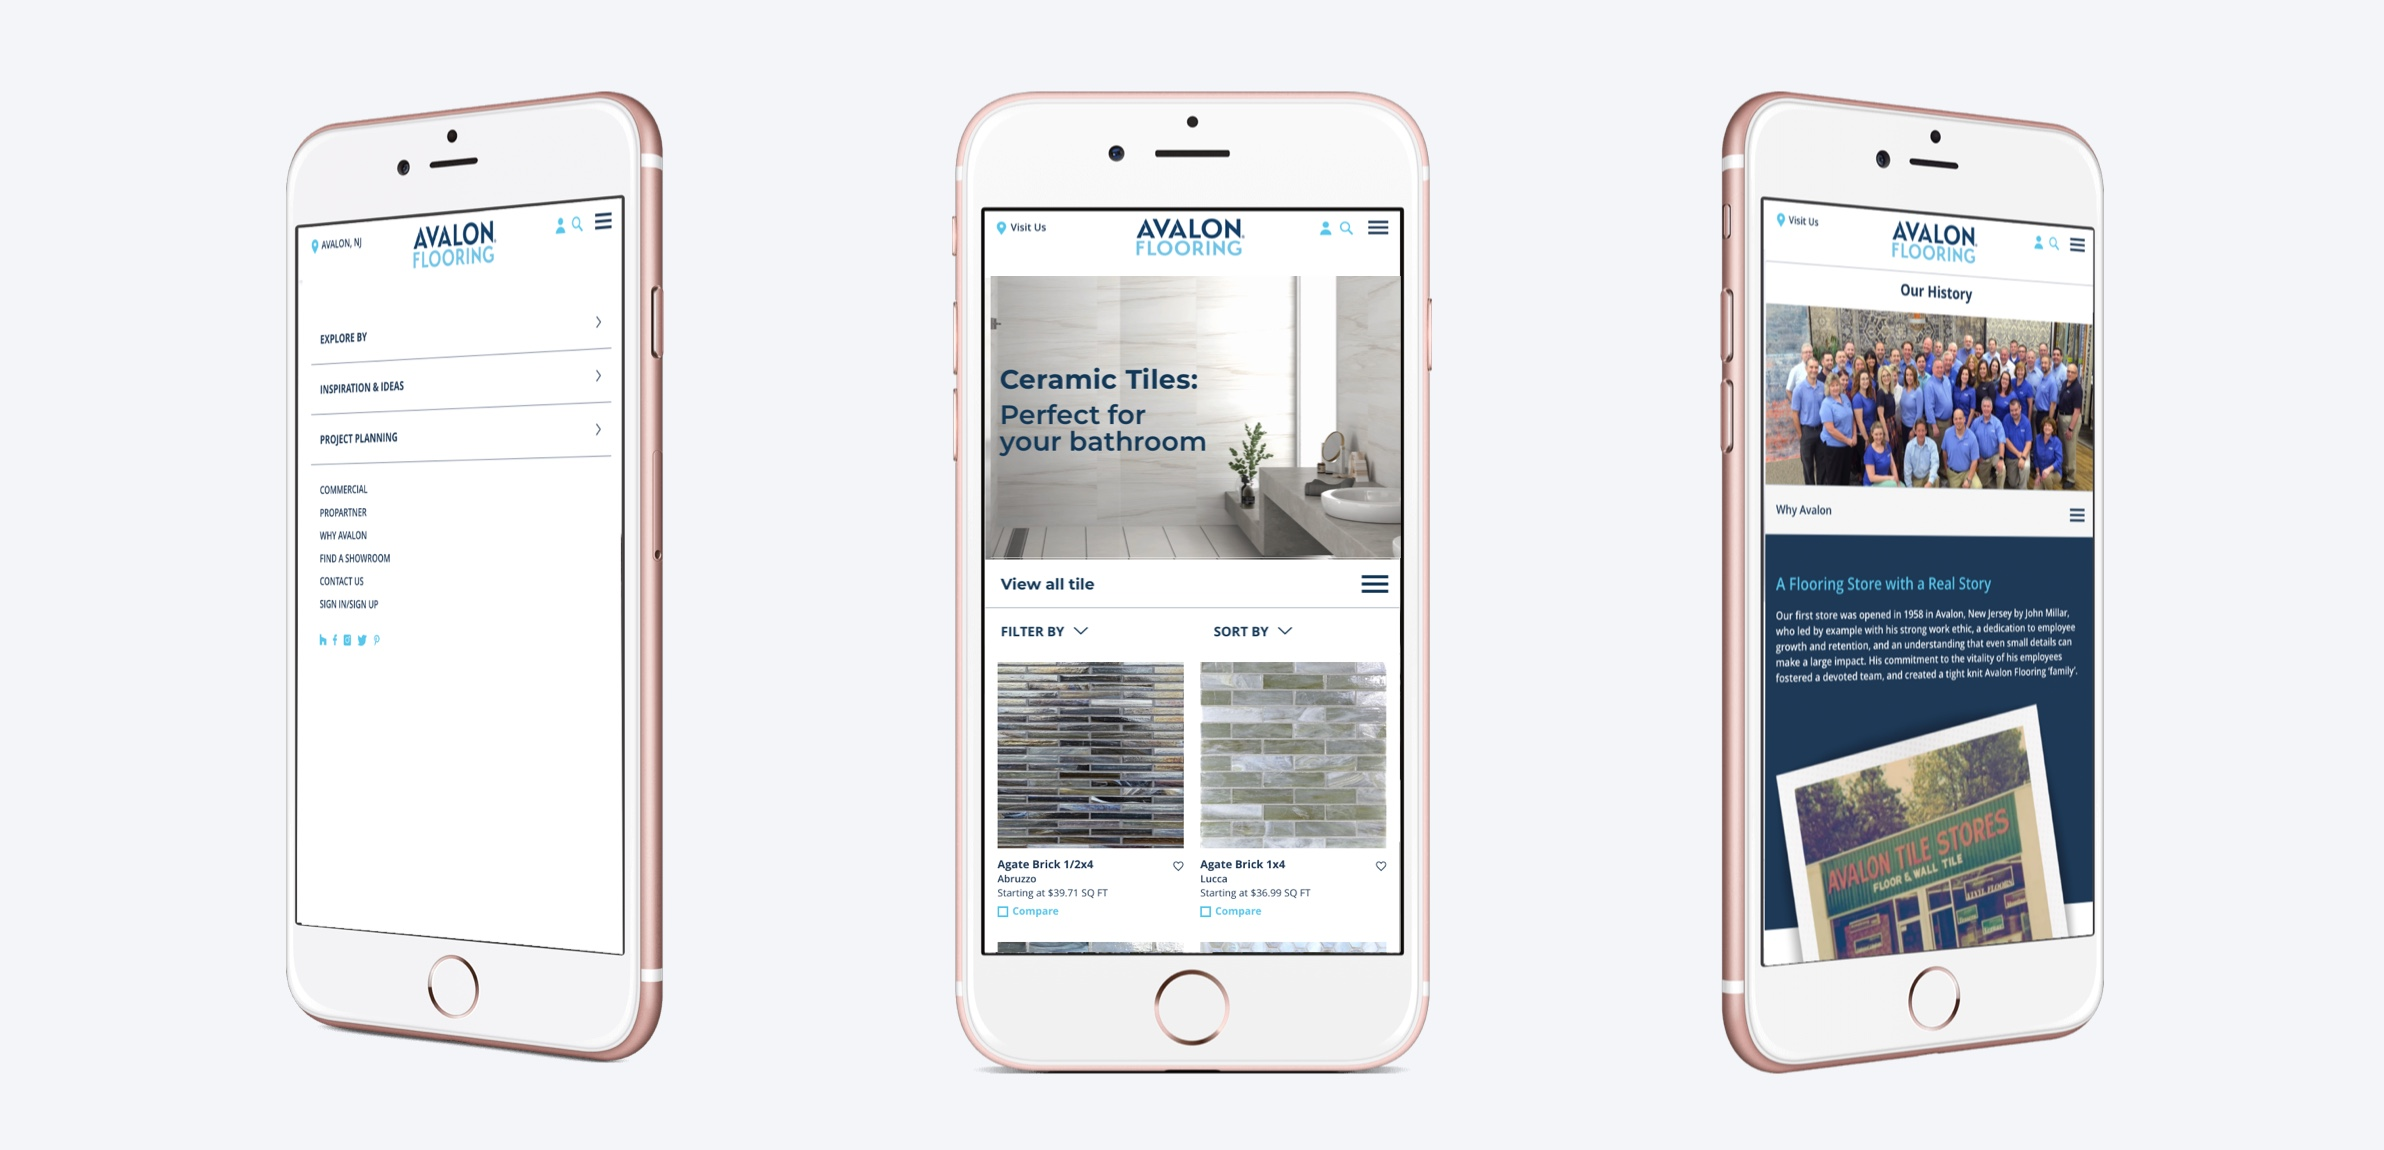 Phone display showing 3 screens from the Avalon Flooring website